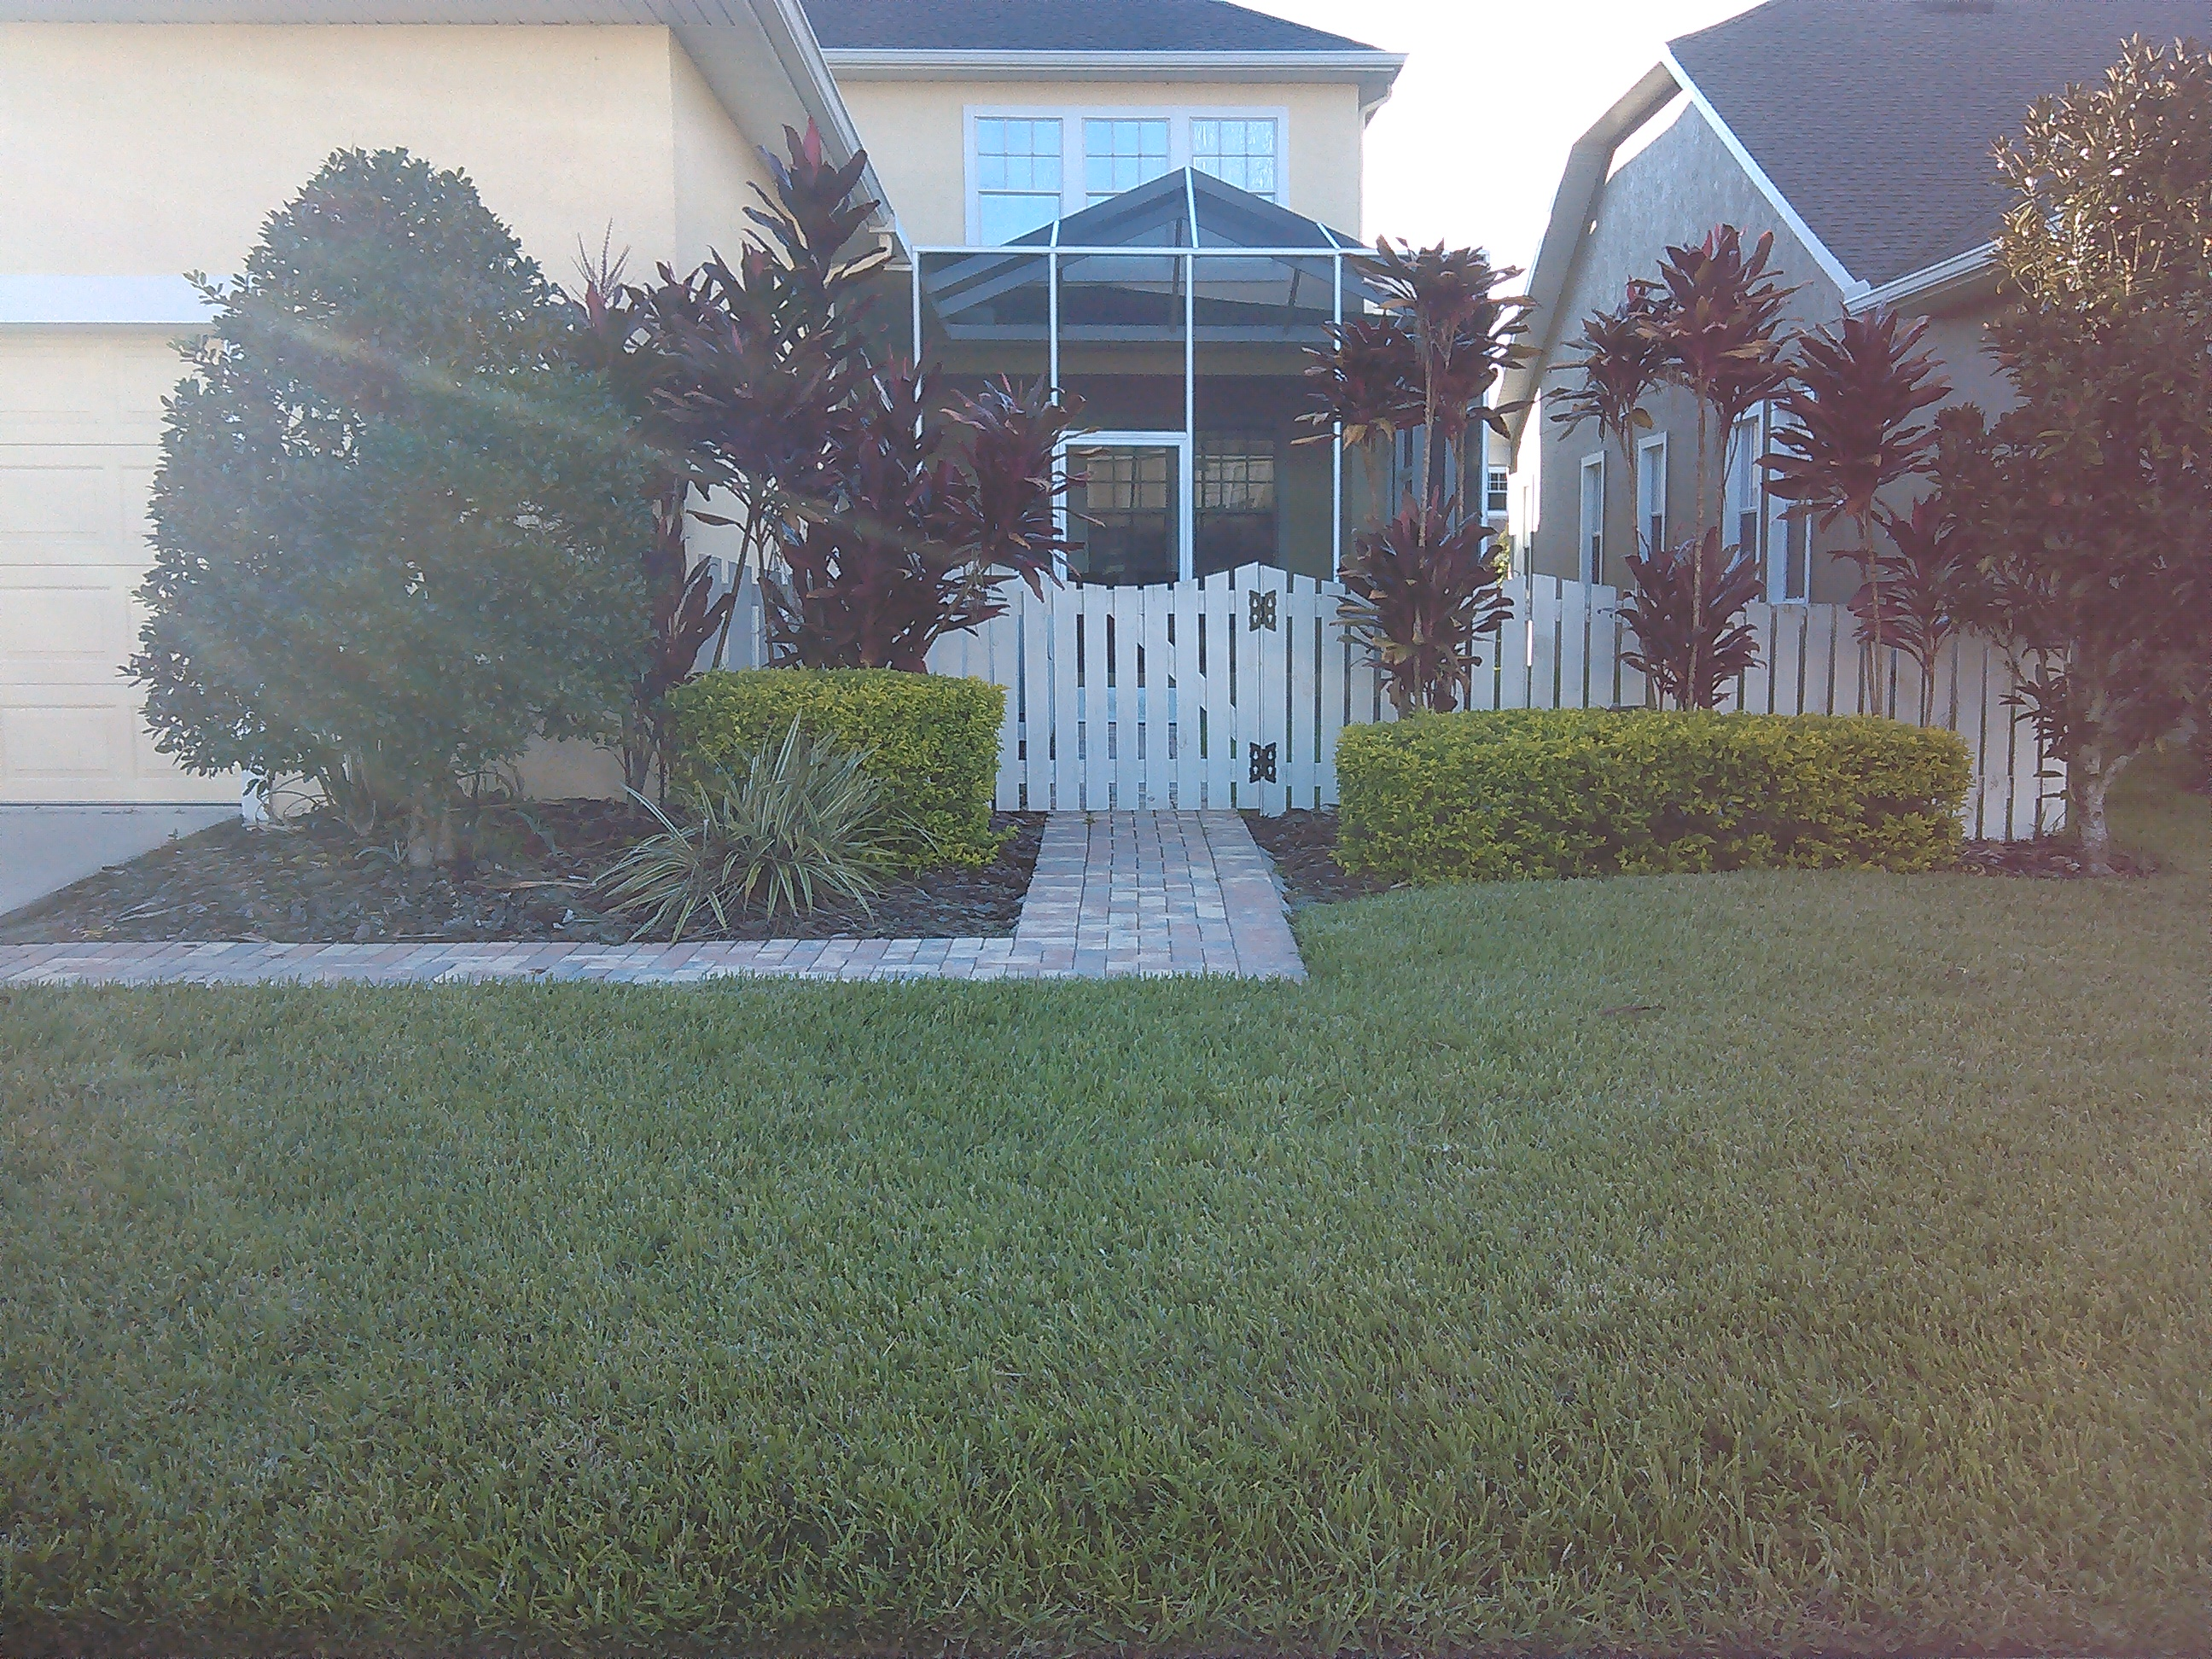 Yard mowing company in Tampa, FL, 33605